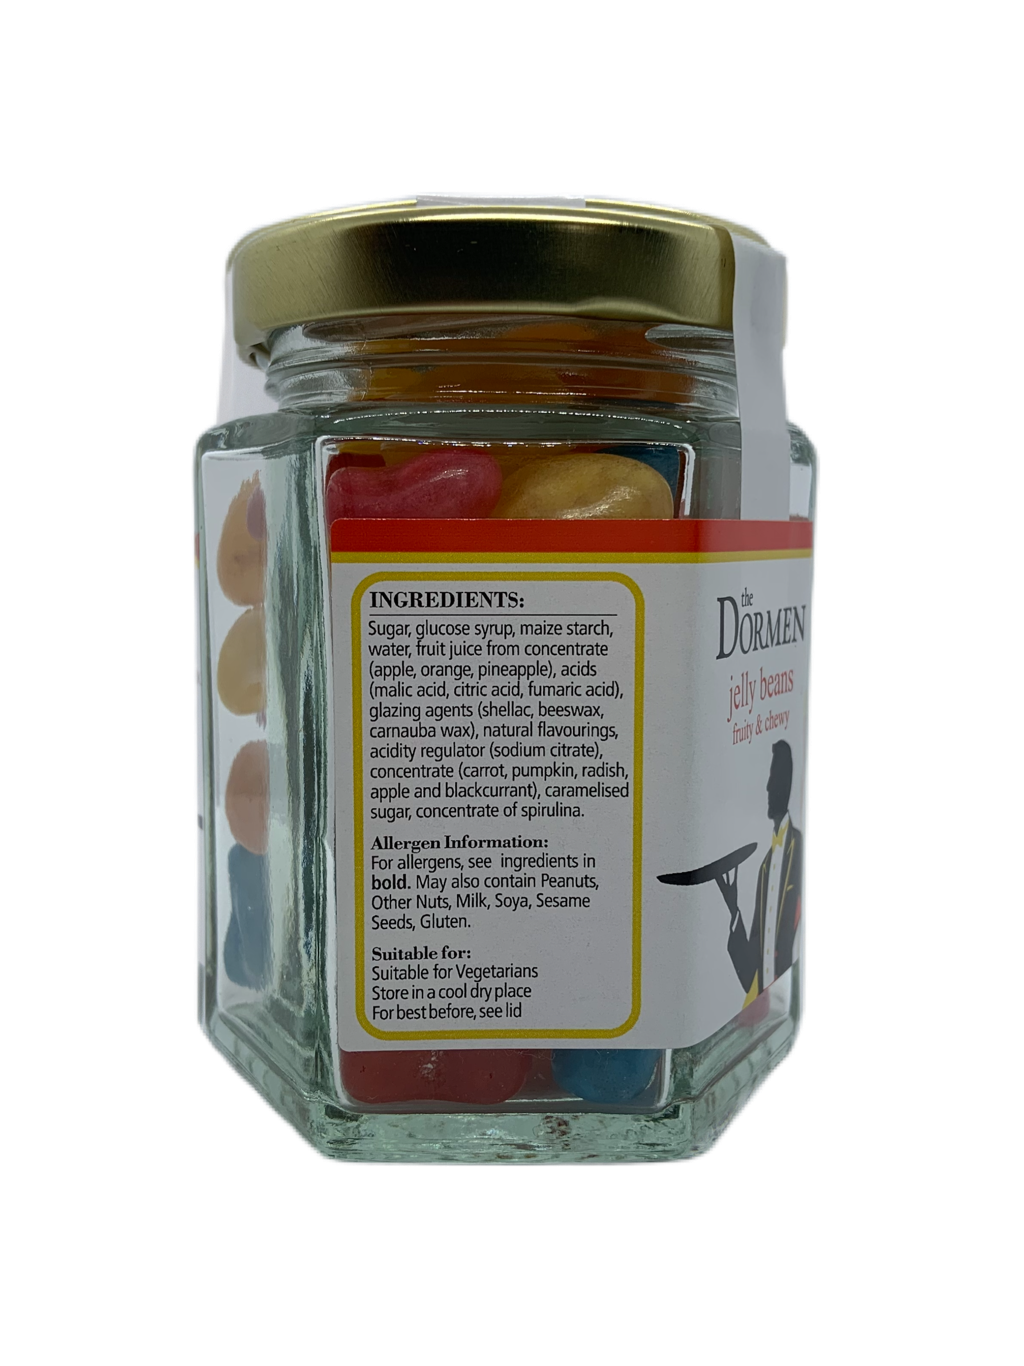 Jelly Beans Hexagonal Jar - The Dormen Food Company